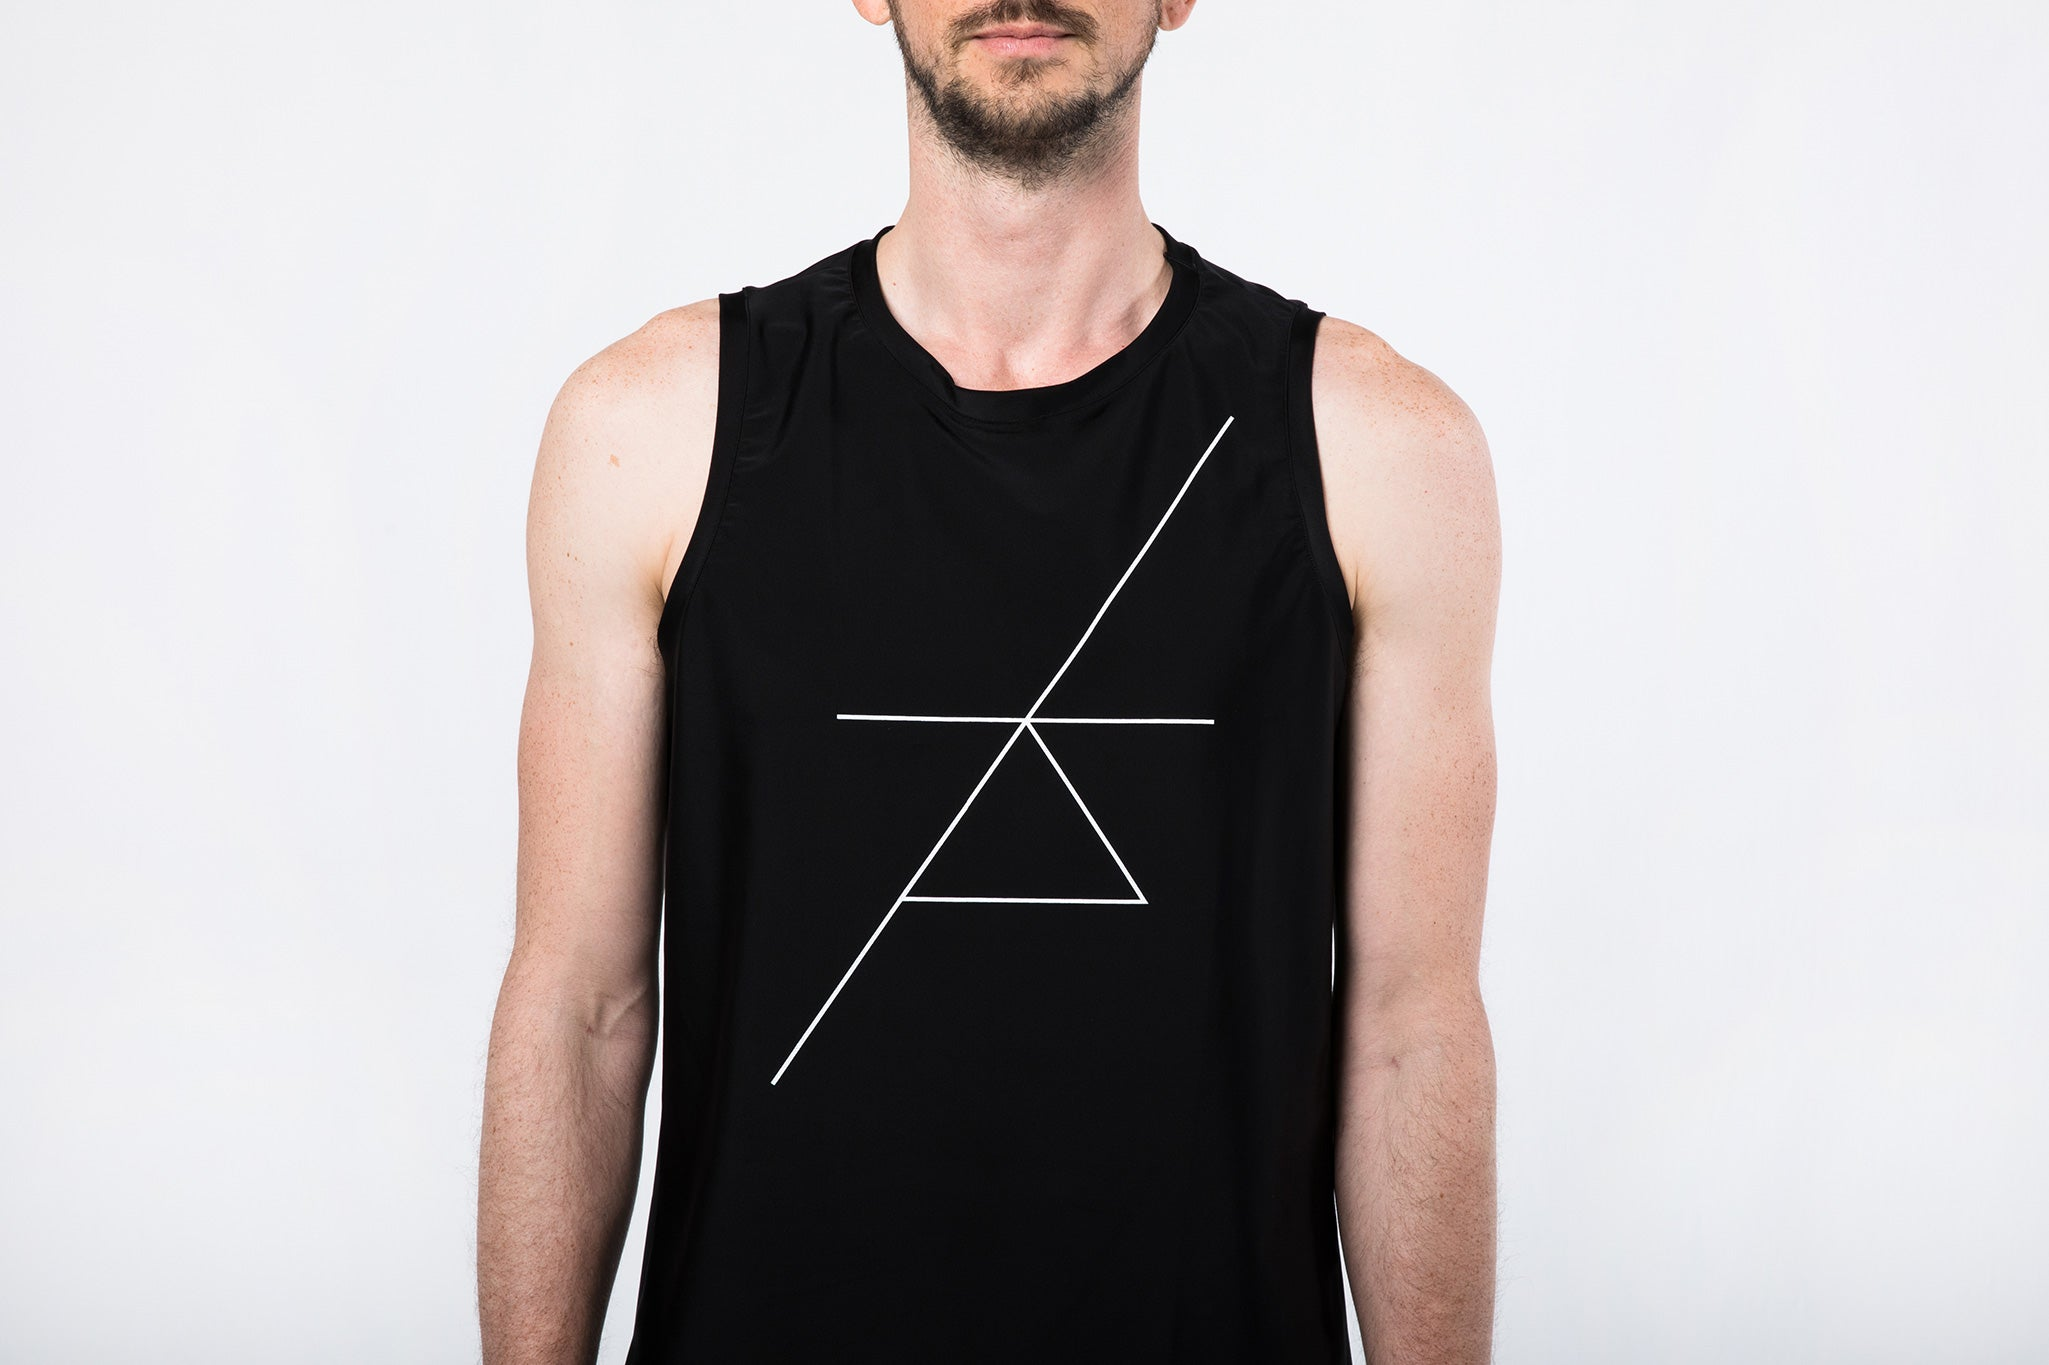 Man in Sleeveless Yoga Shirt by Coroa